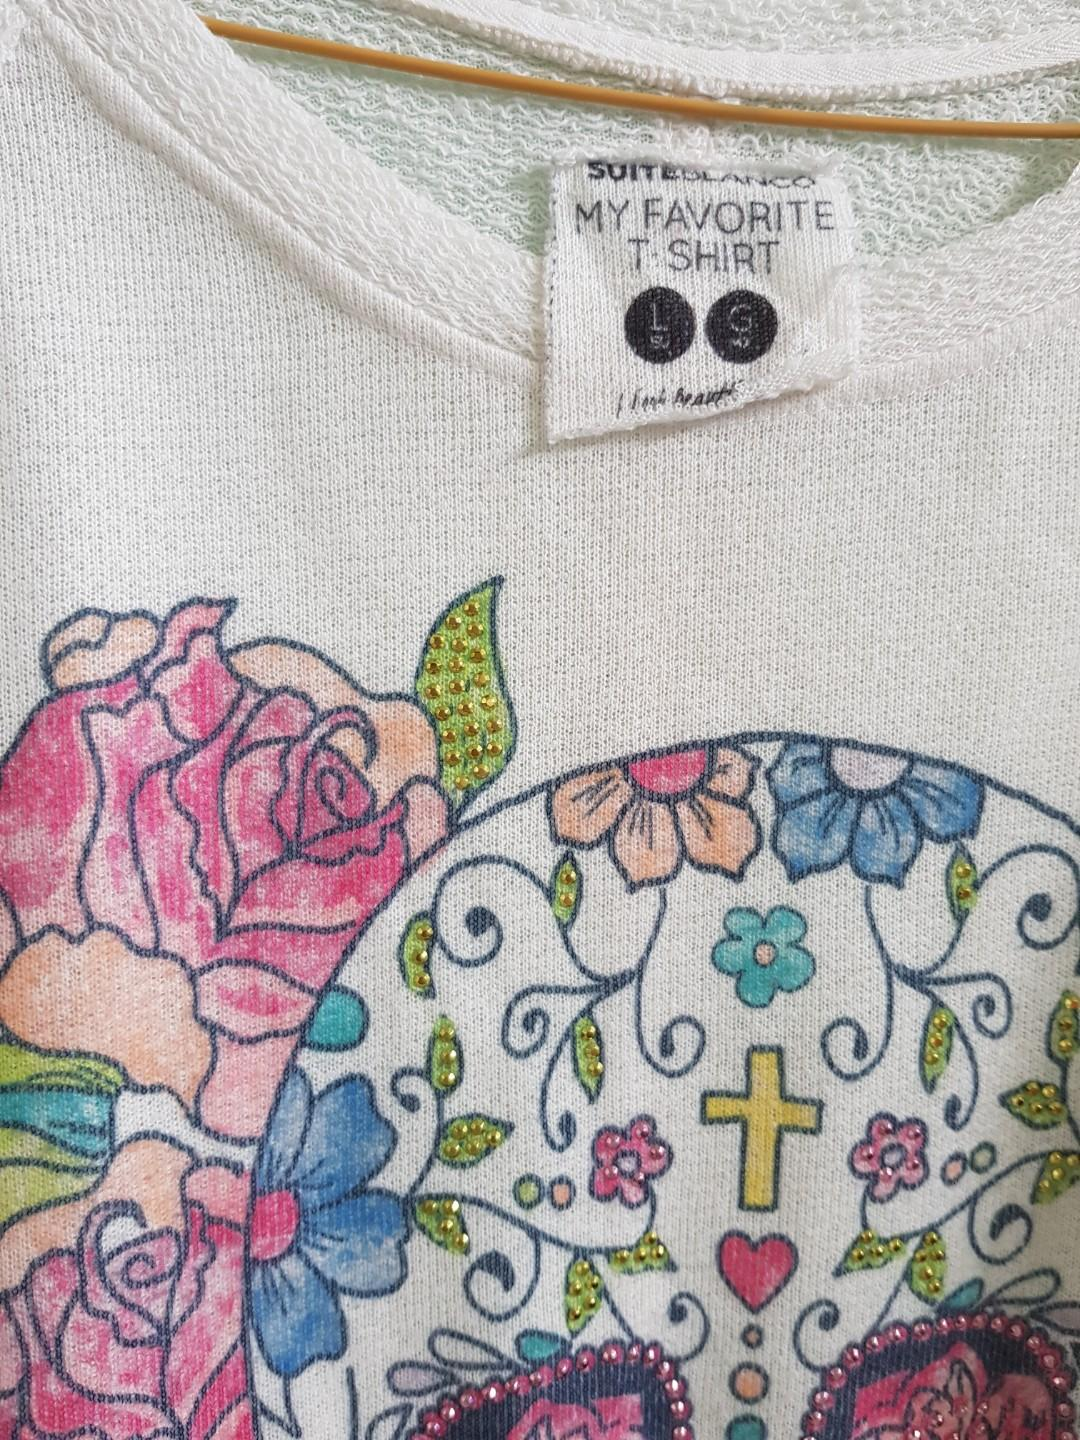 Suite Blanco - White Top Knit